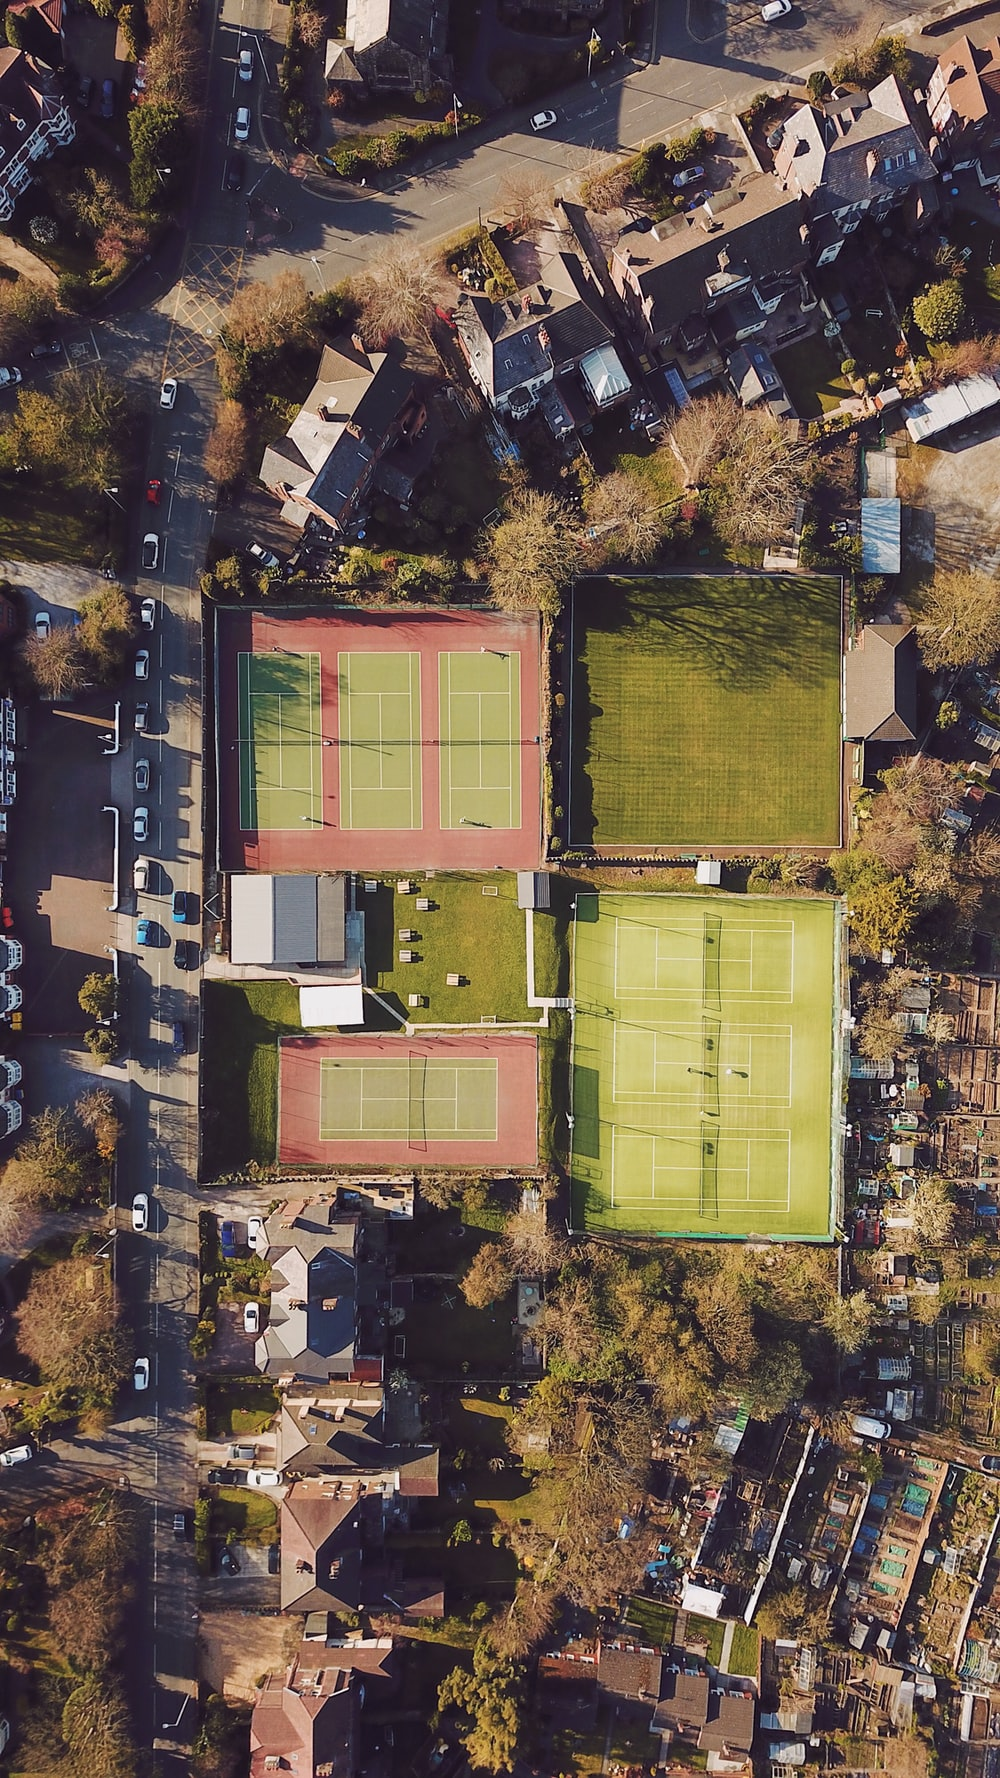 aerial view of green soccer field